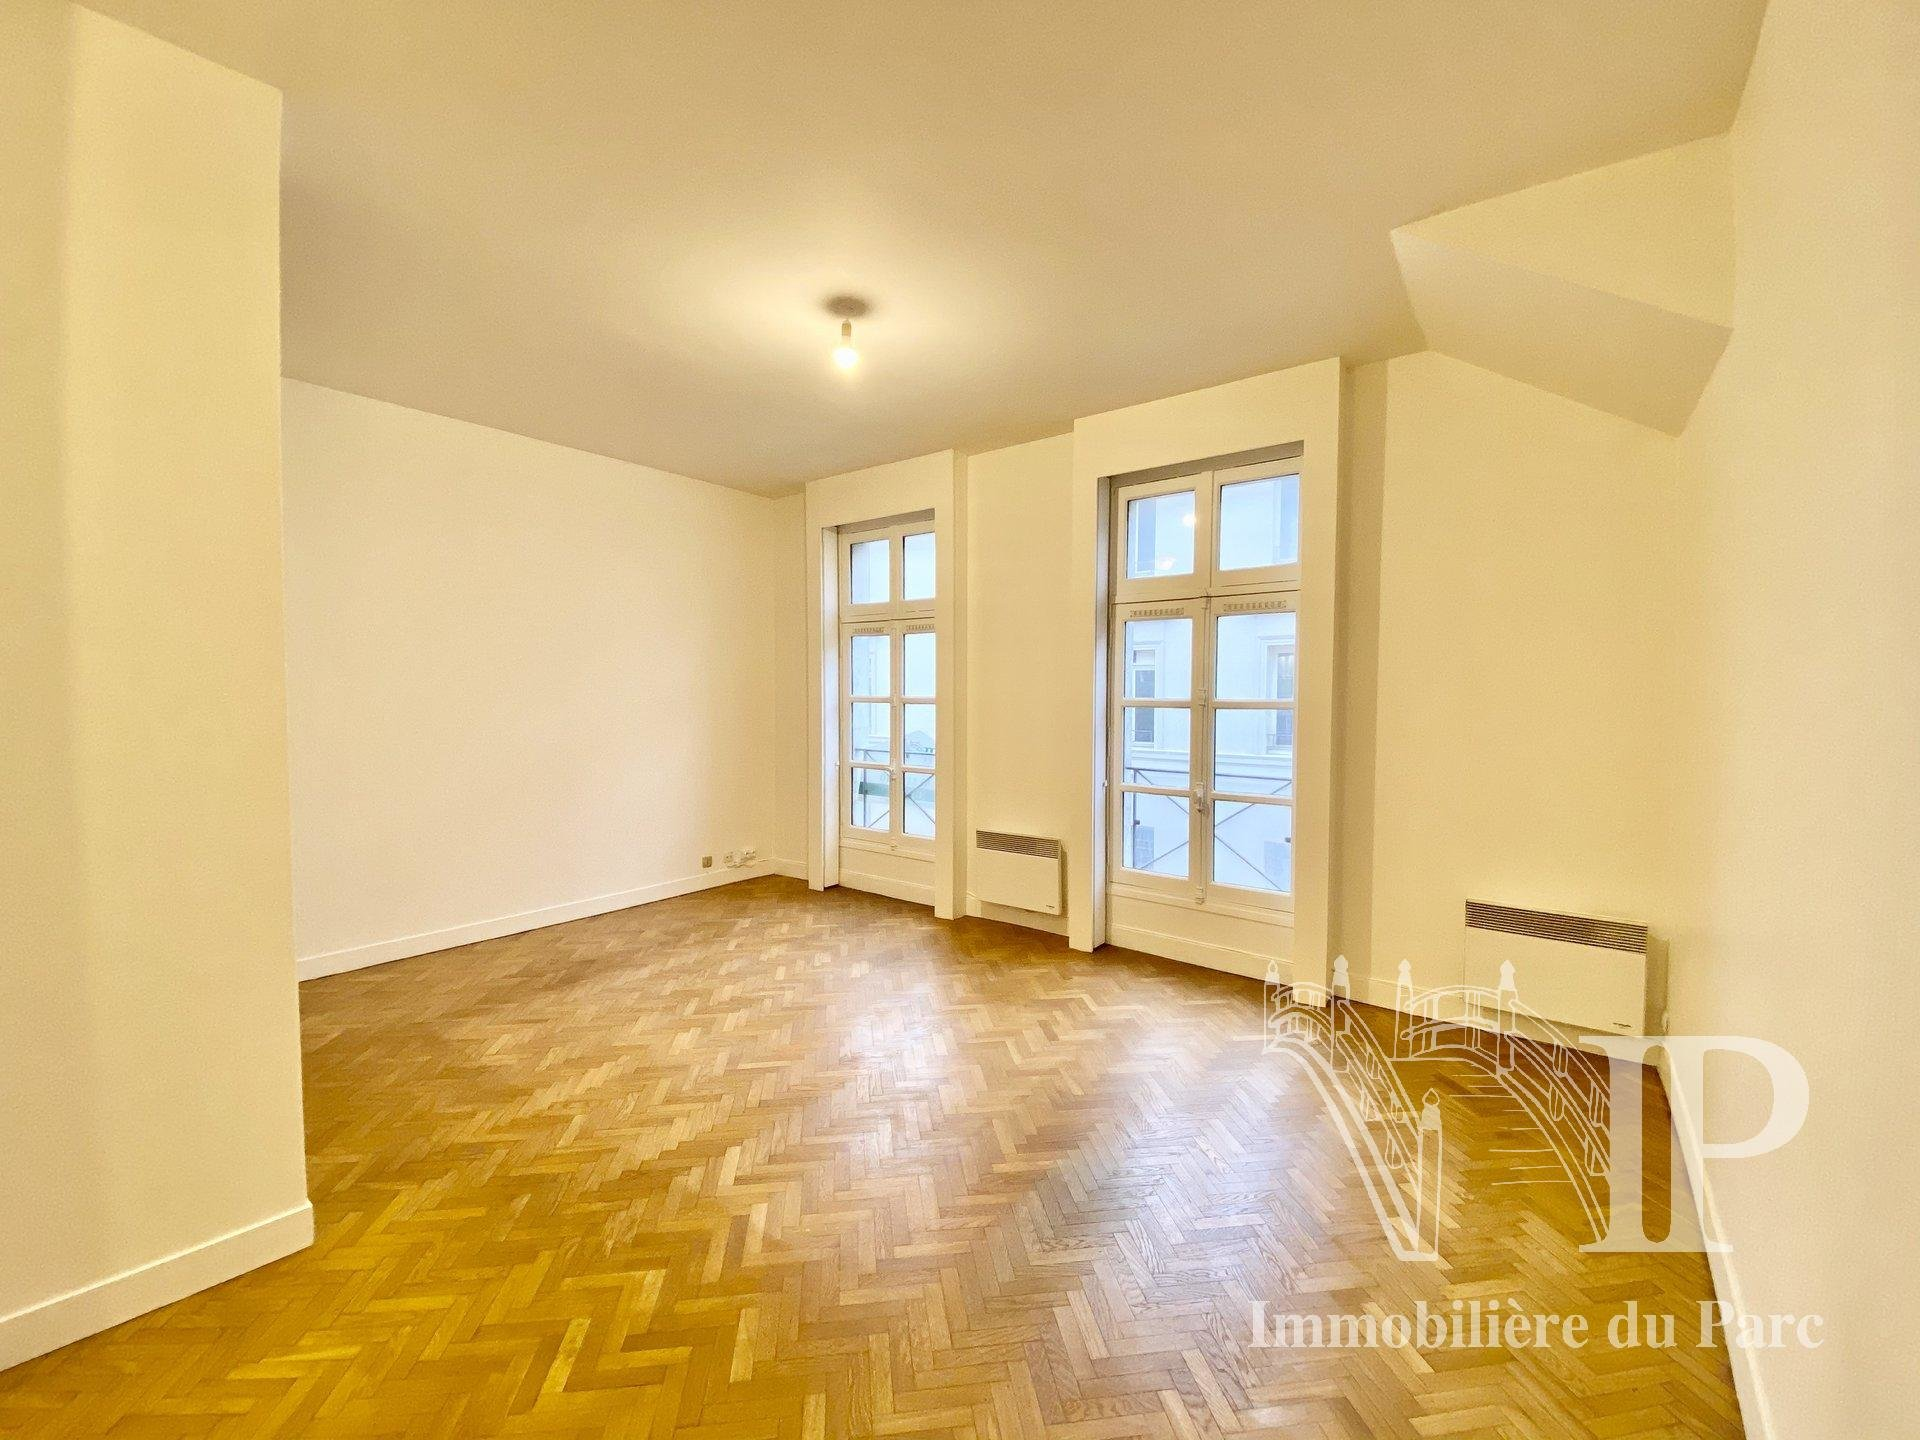 Location Appartement - Saint-Germain-en-Laye Centre Ville